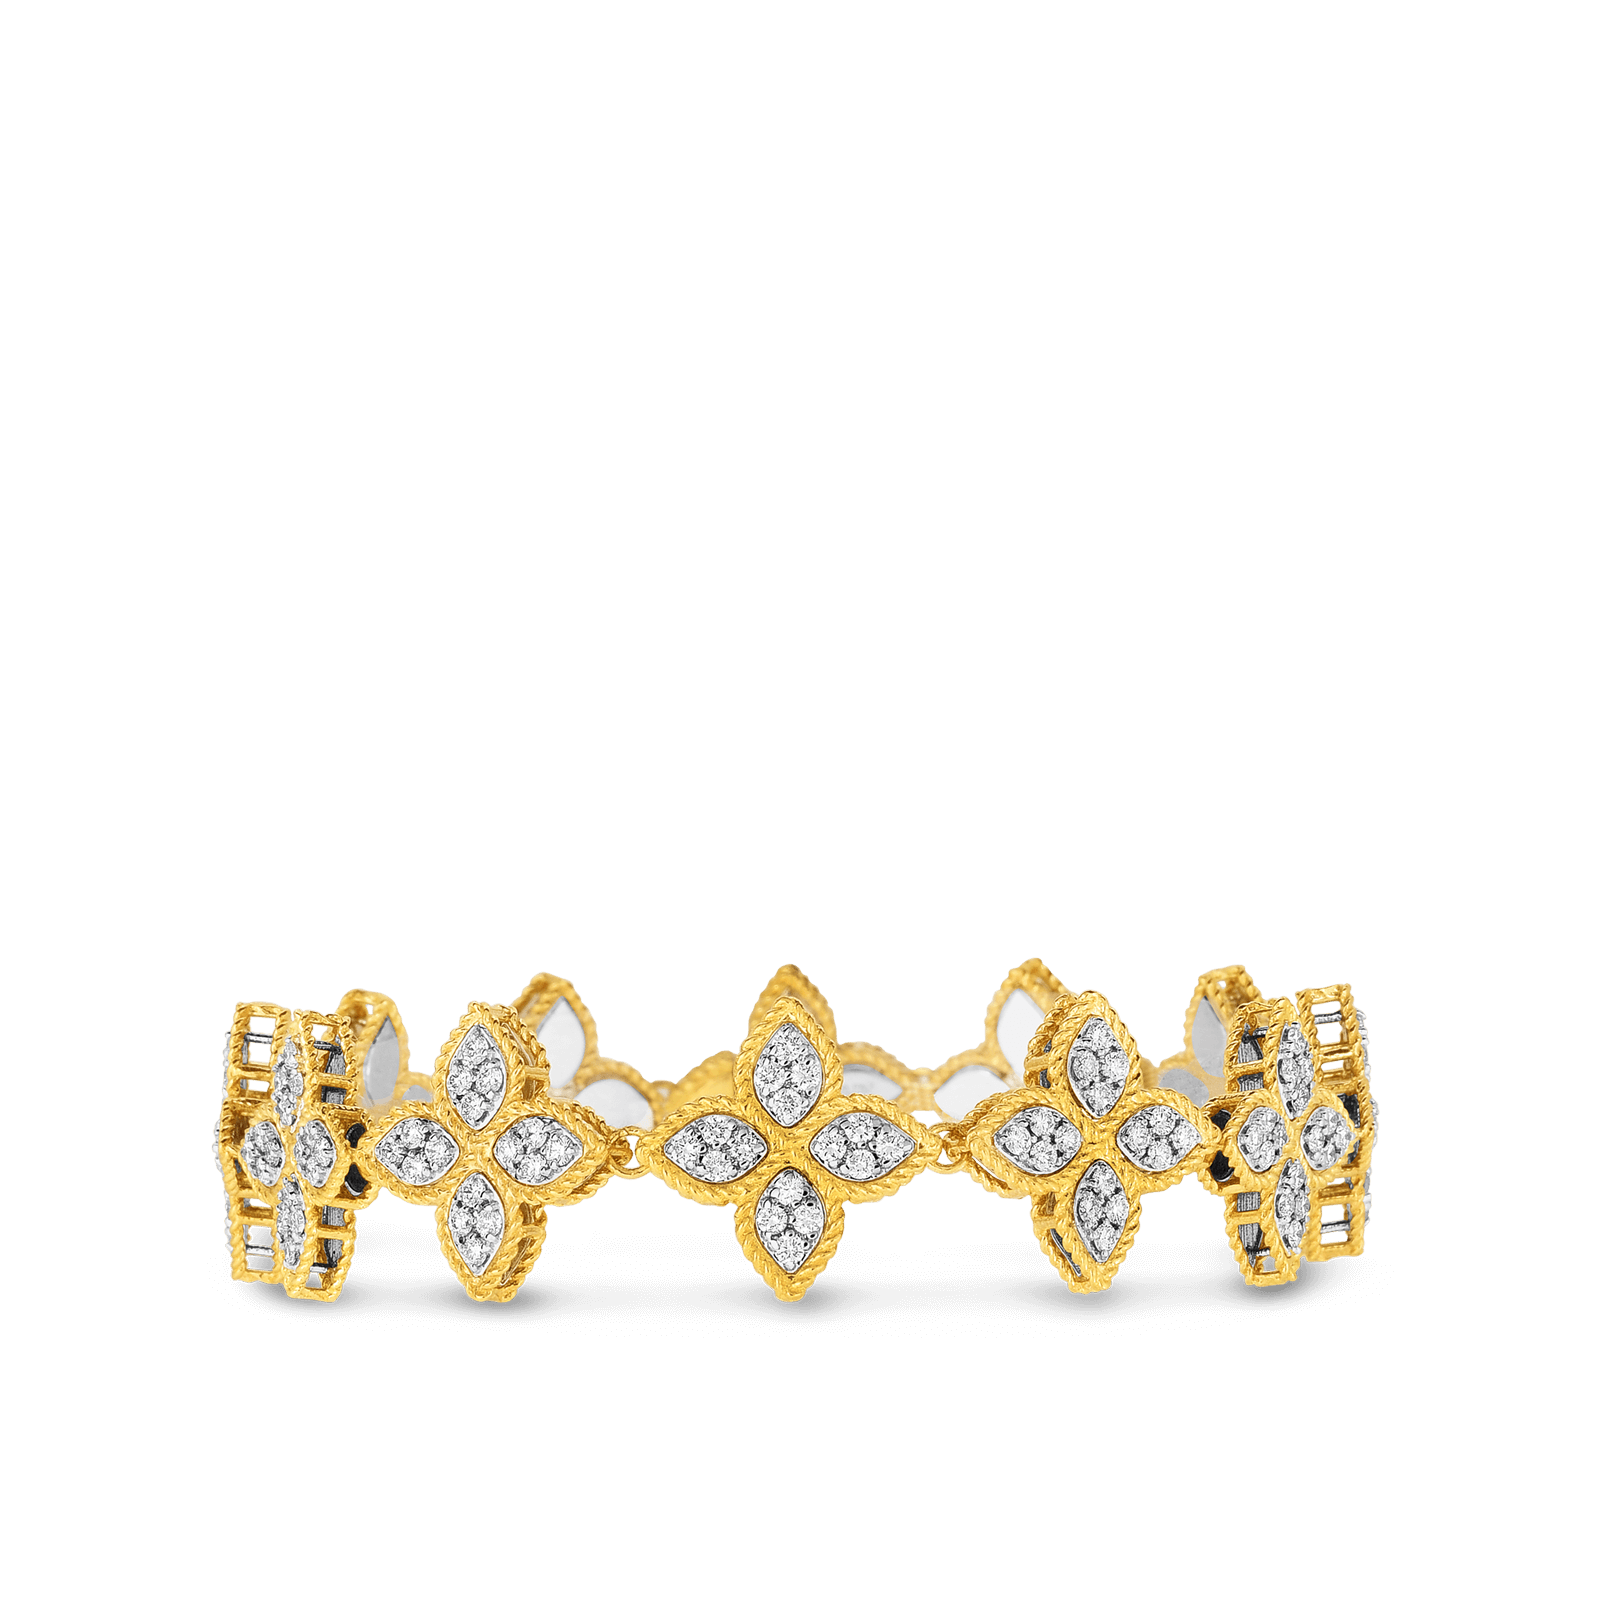 18kt Gold Ring With Black And White Fleur De Lis Diamonds